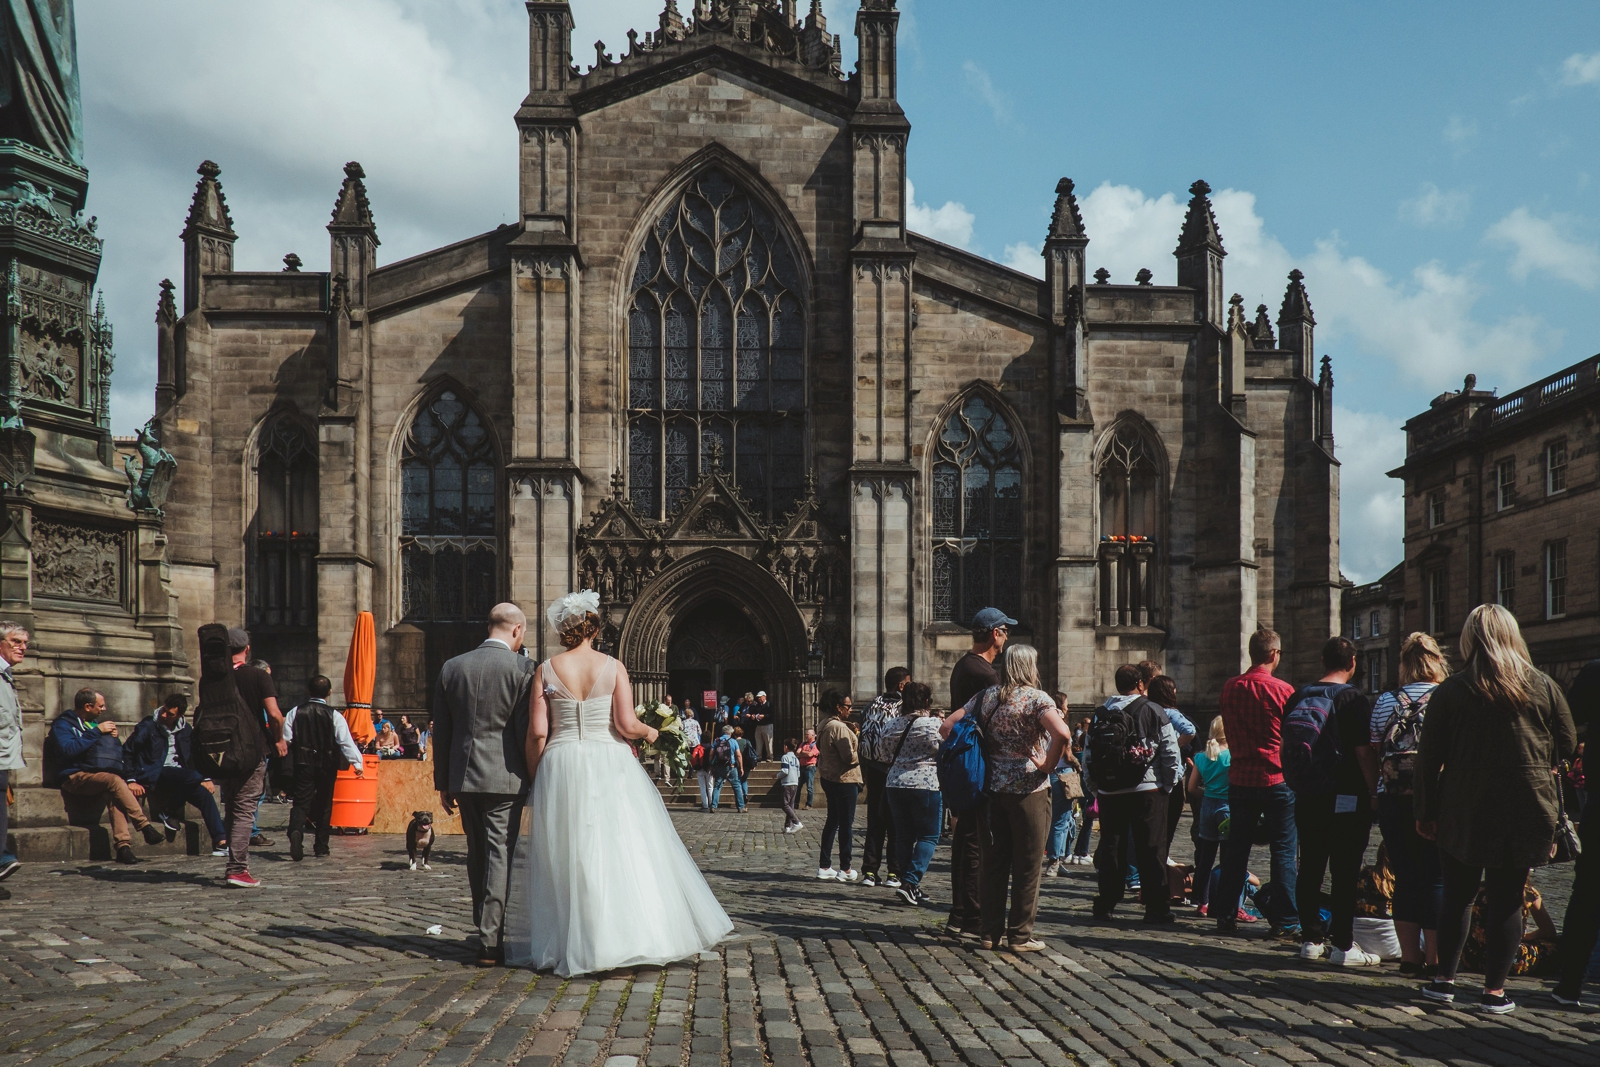 Angela___Andy_s_Edinburgh_elopement_by_Barry_Forshaw_0304.jpg